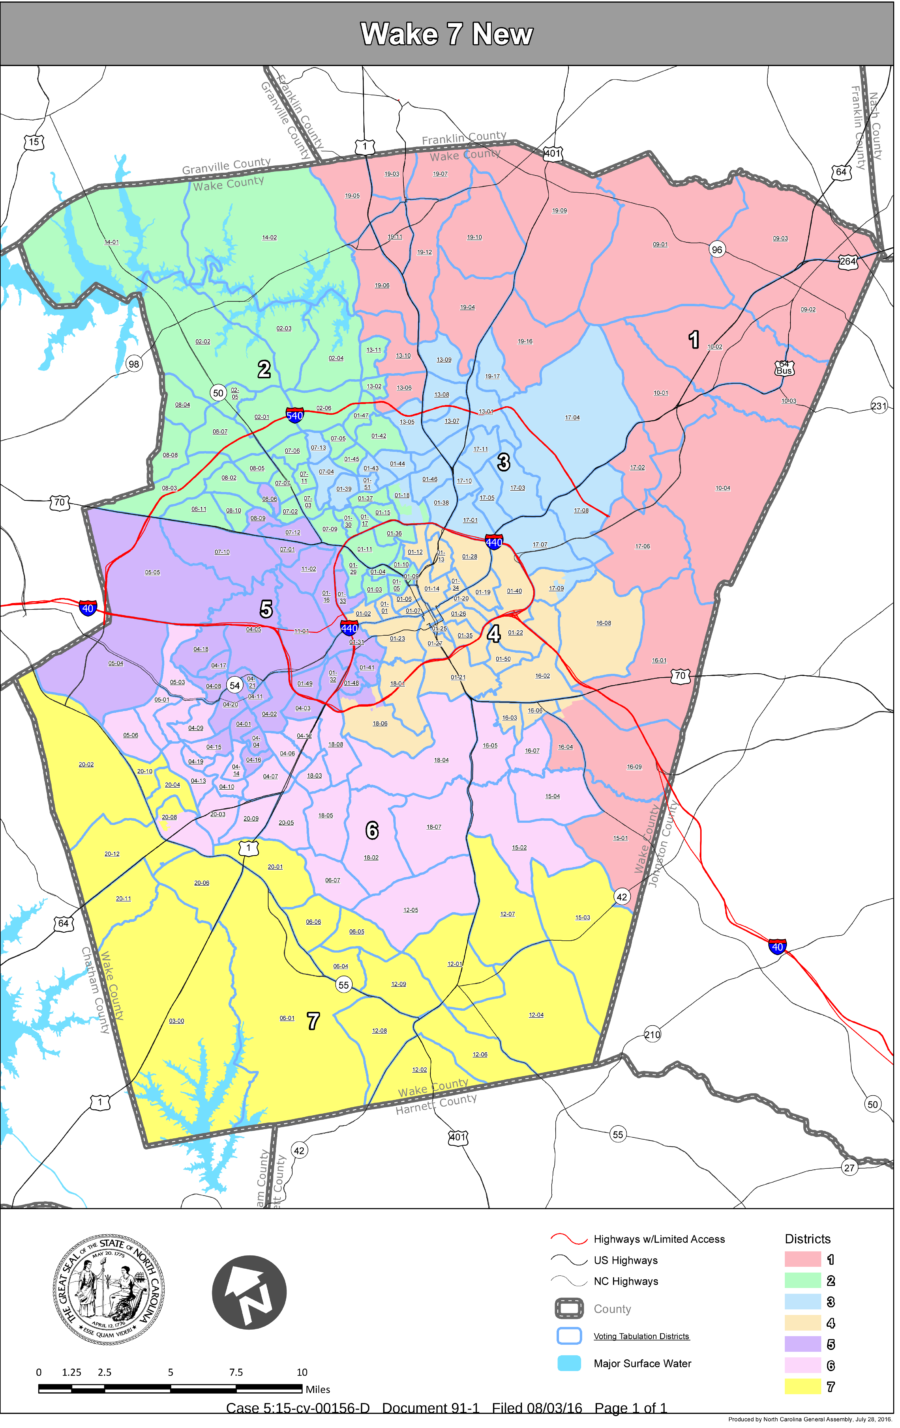 Have Filed New Maps With The U S District Court And Are Urging The Judge Handling The Case To Approve The Maps For The 2016 Election For Wake County